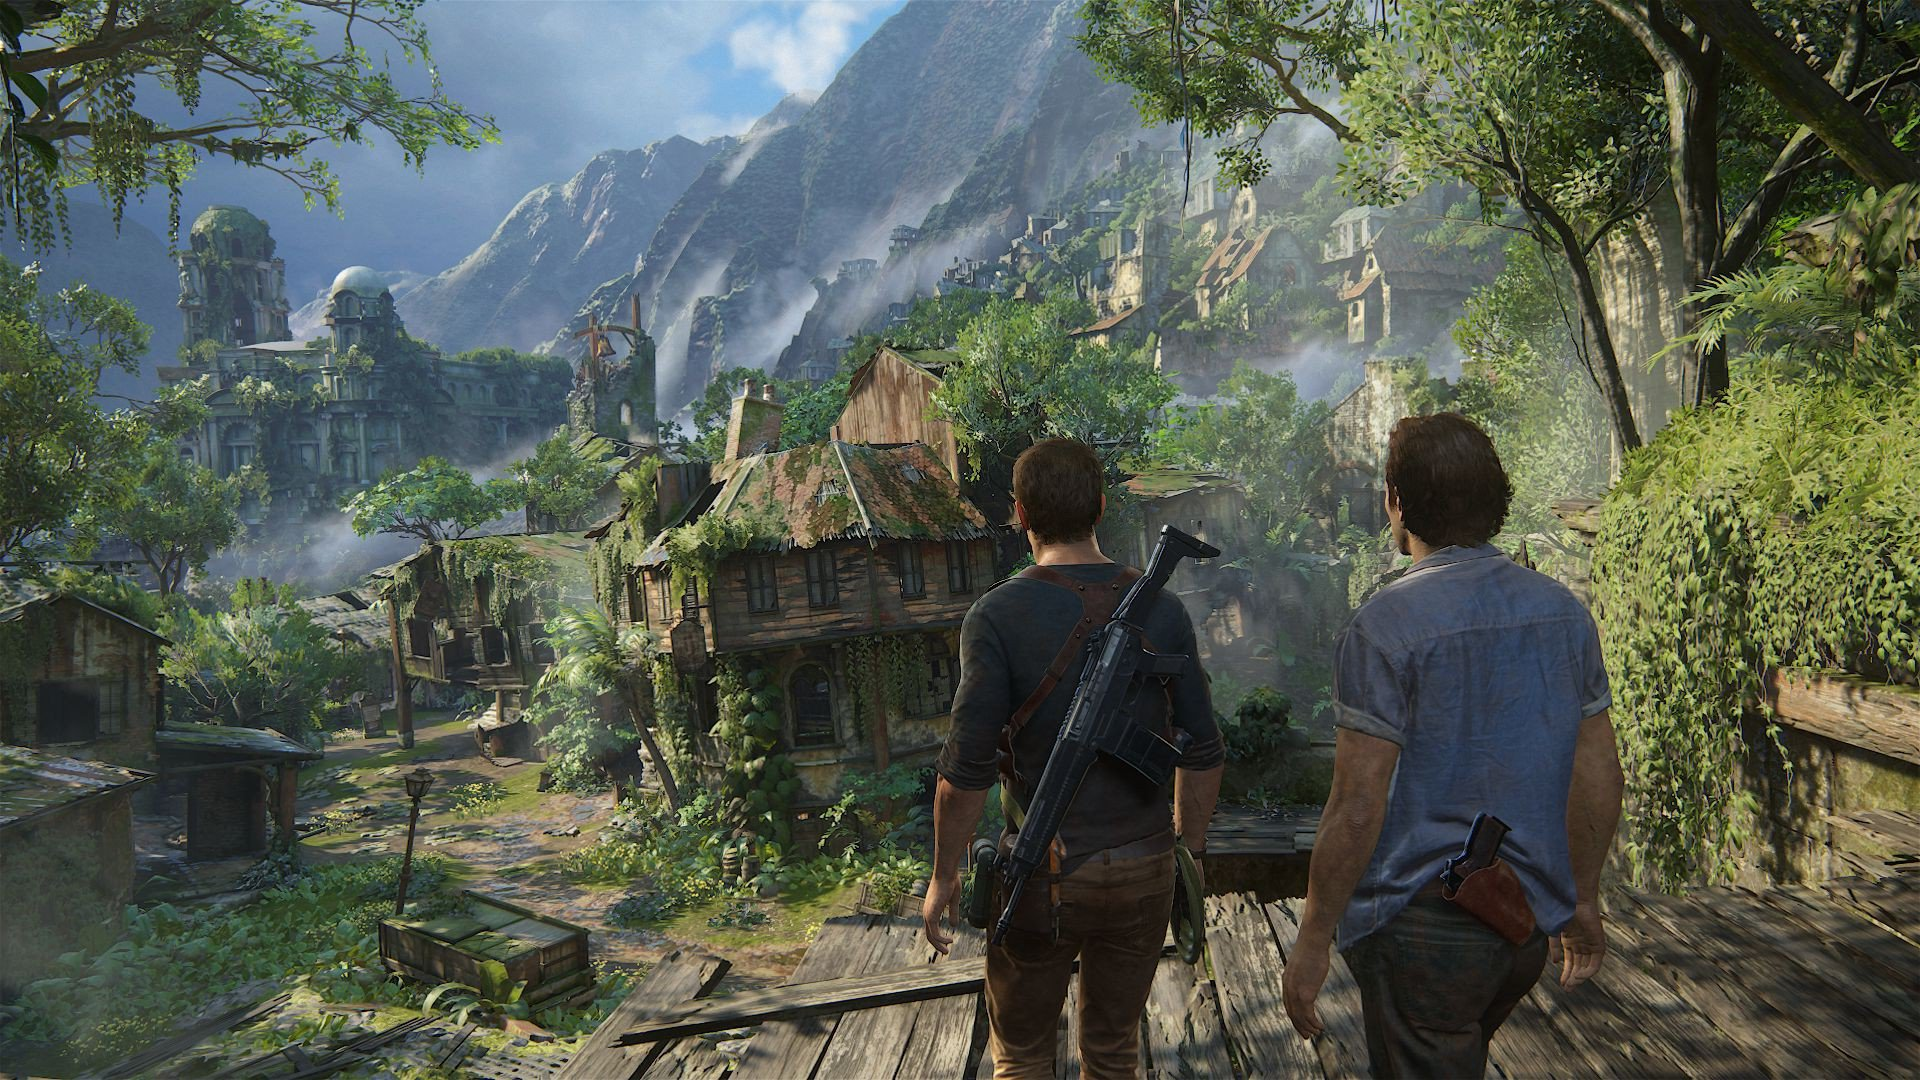 uncharted 4 desktop game, hd games, 4k wallpapers, images